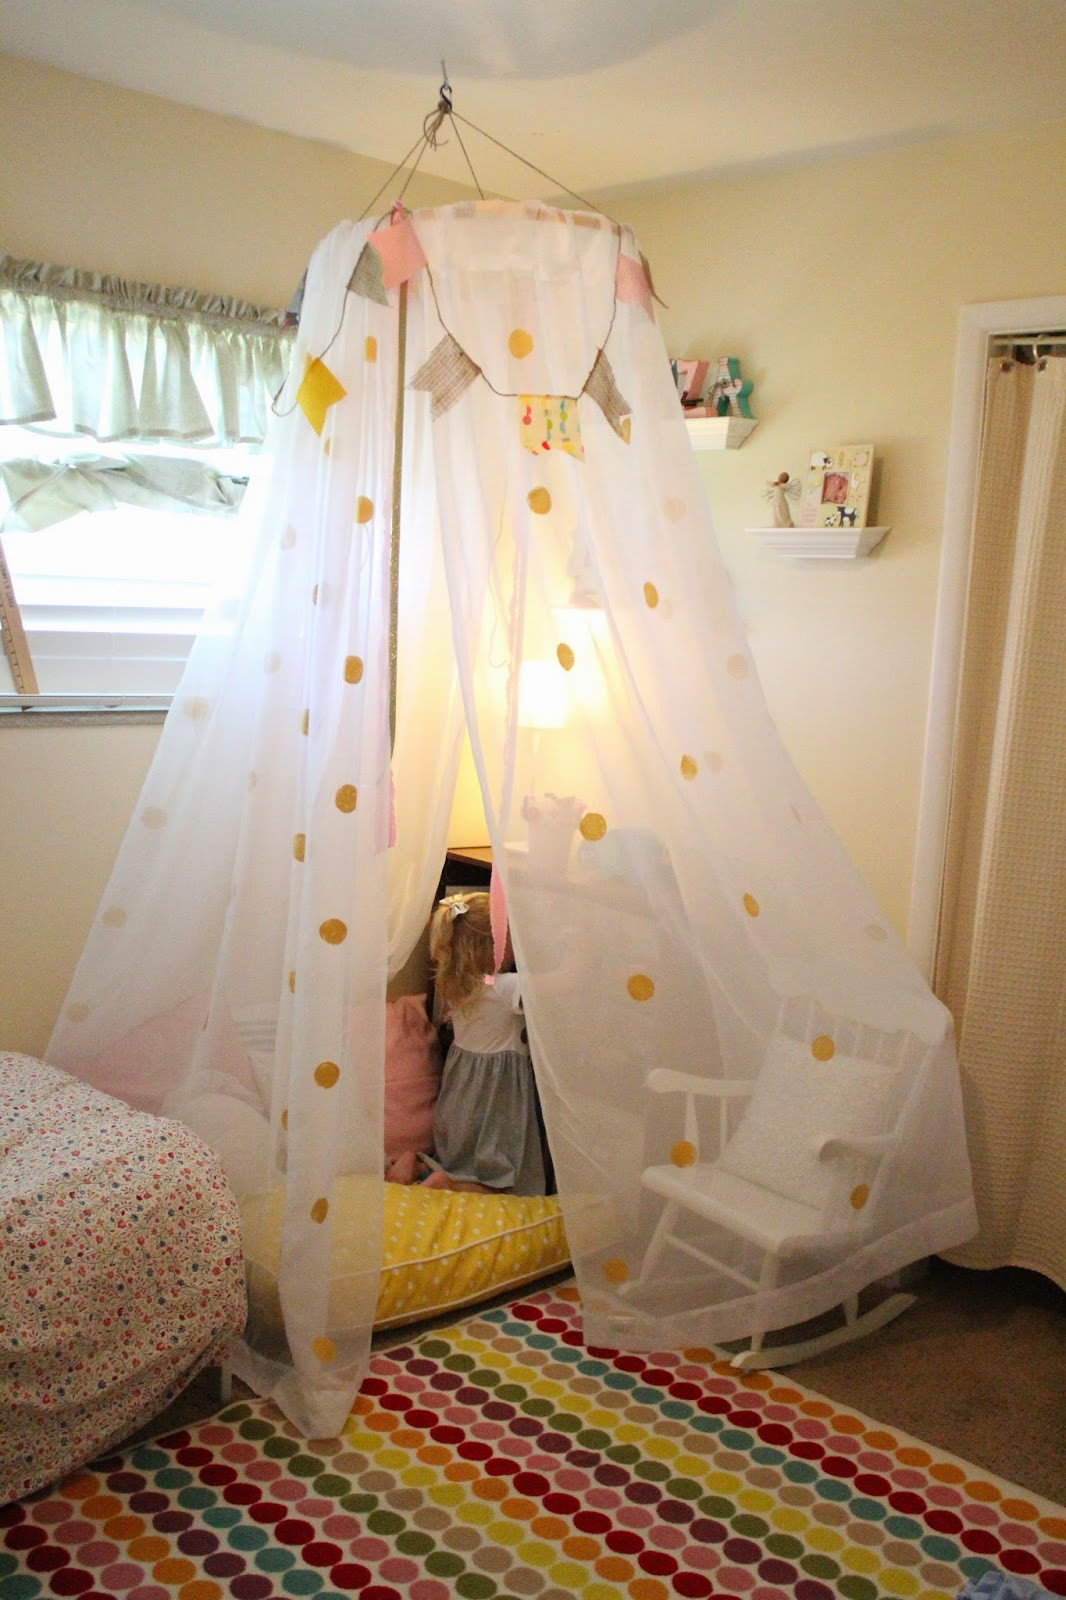 Best ideas about DIY Bed Tents . Save or Pin Mommy Vignettes DIY No Sew Tent Canopy Tutorial Now.